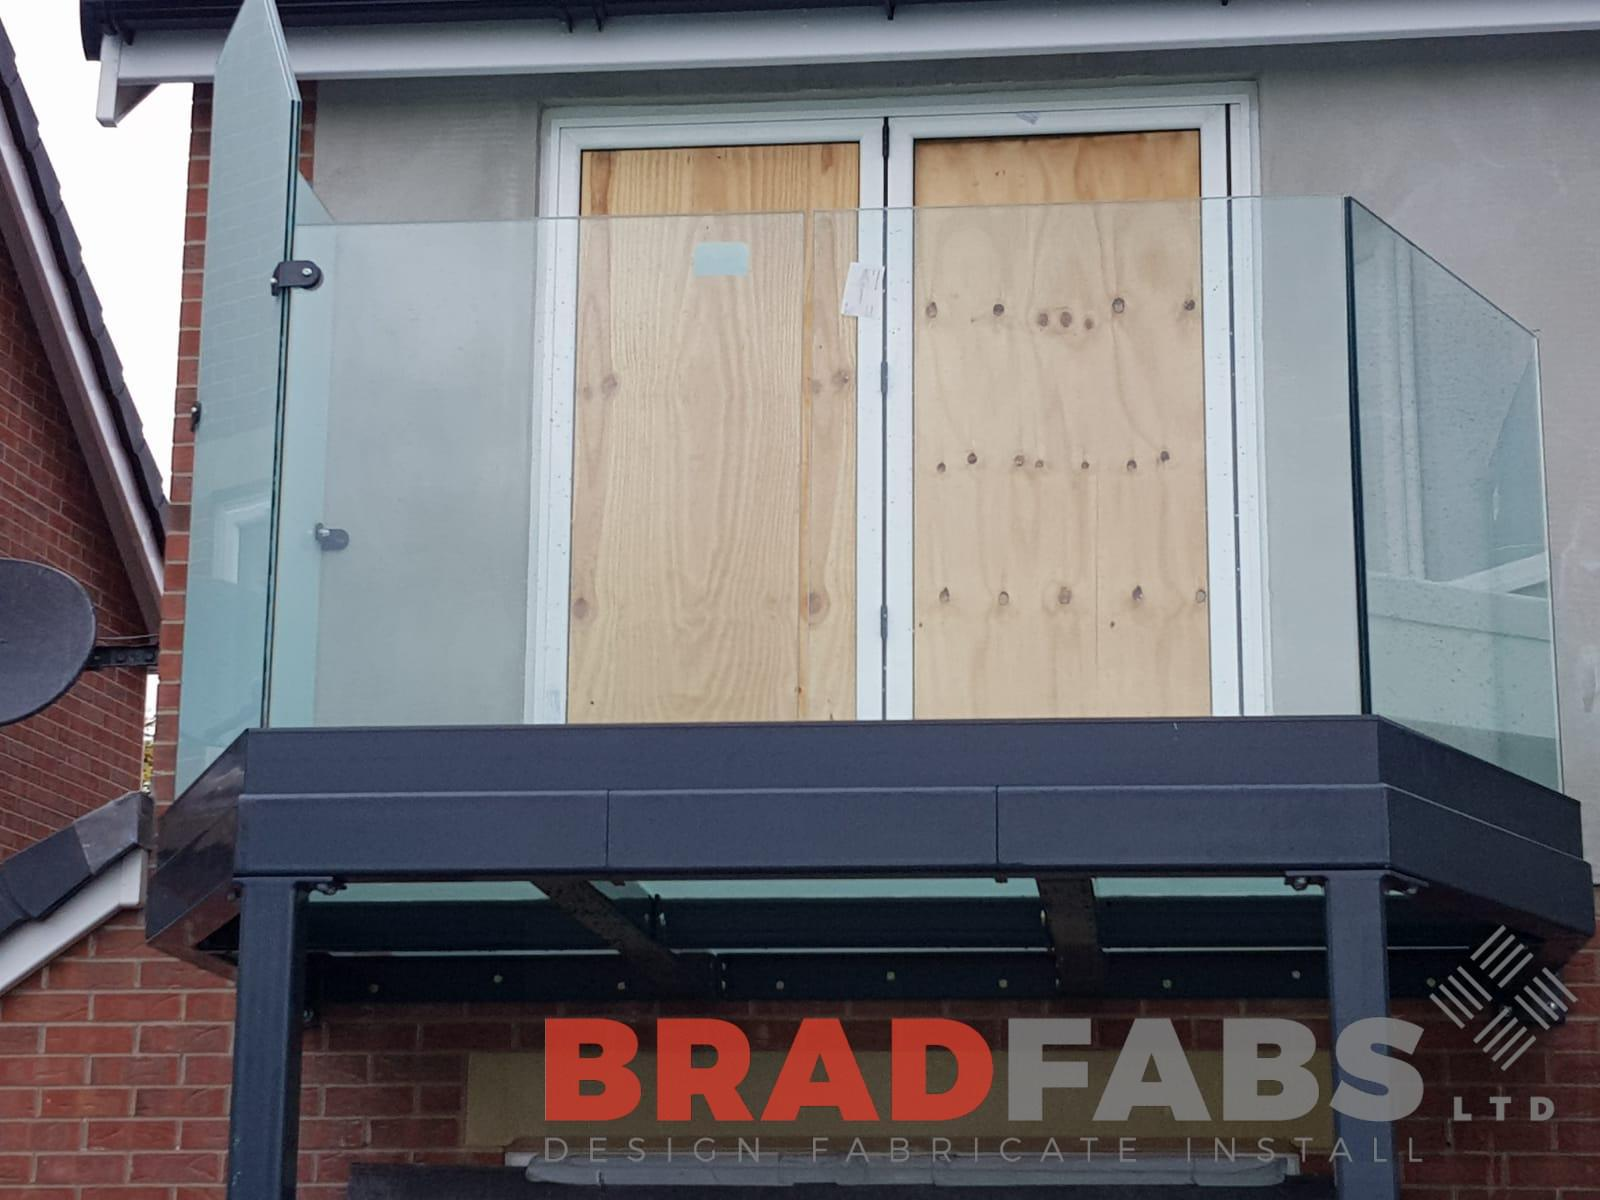 Infinity glass channel system, bespoke products by Bradfabs